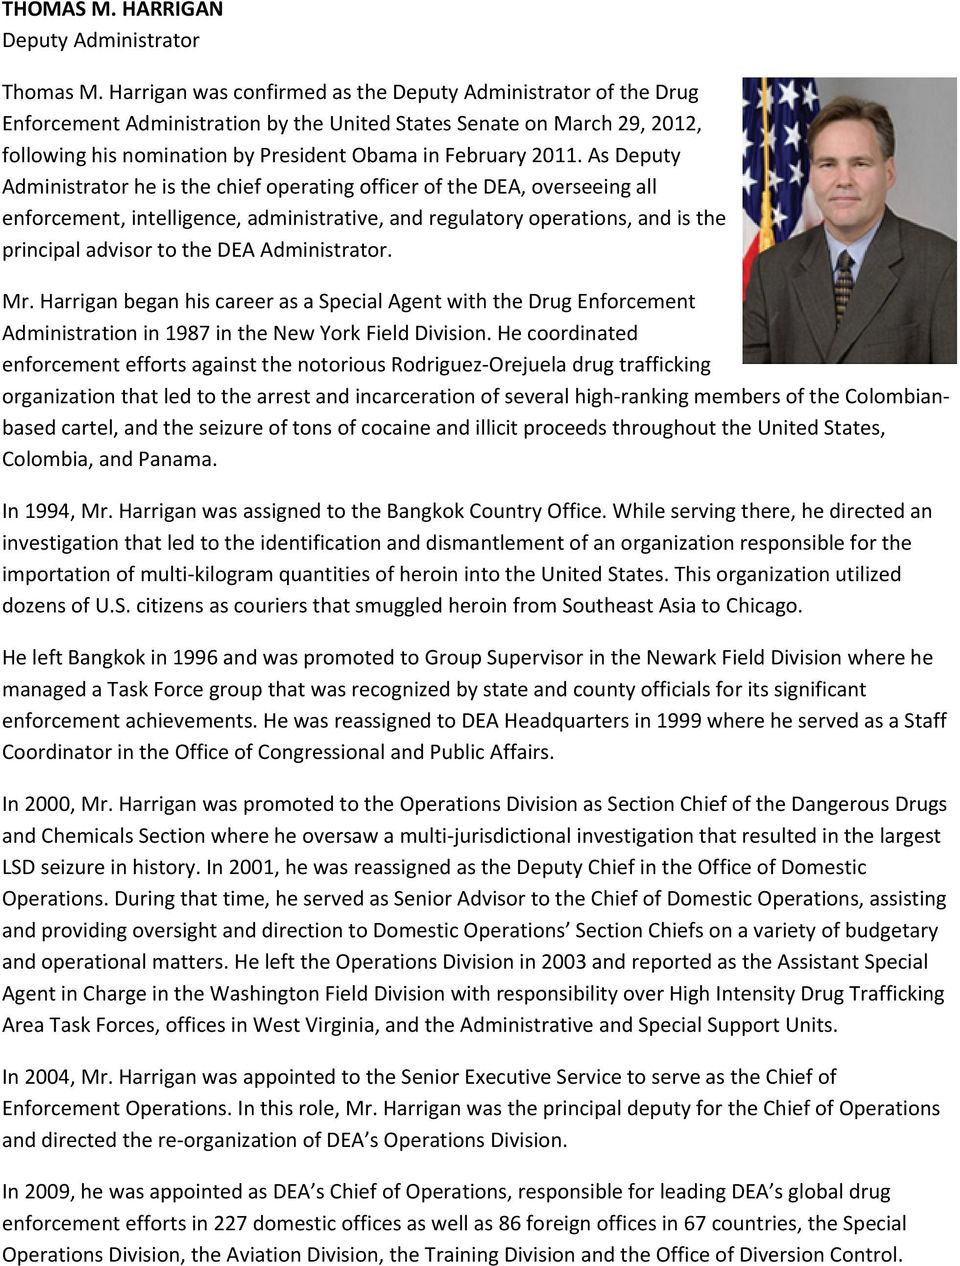 As Deputy Administrator he is the chief operating officer of the DEA, overseeing all enforcement, intelligence, administrative, and regulatory operations, and is the principal advisor to the DEA